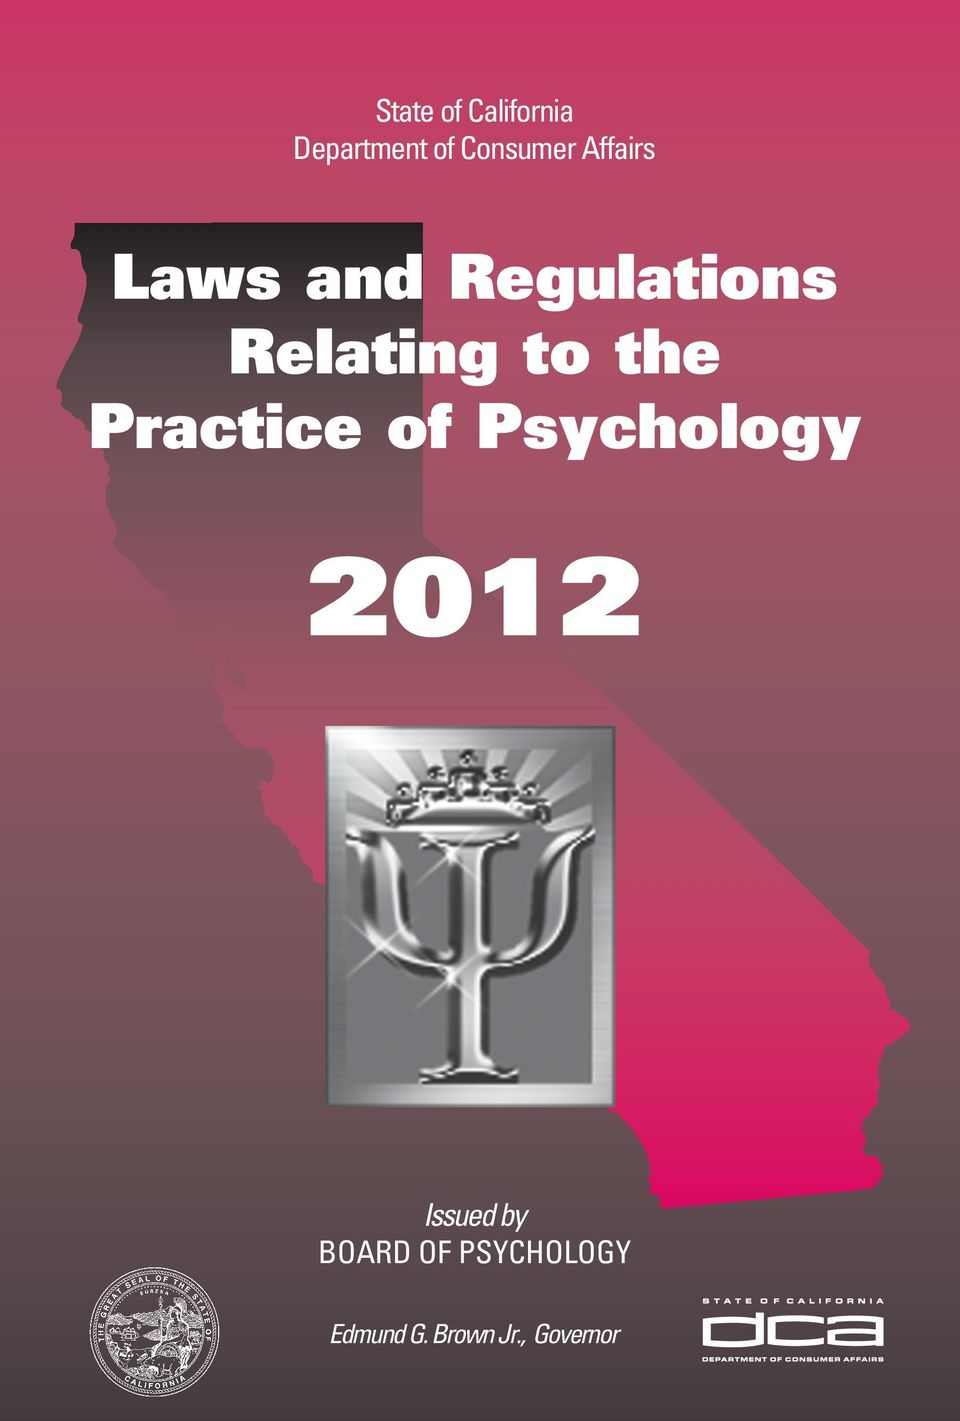 the Practice of Psychology 2012 Issued by